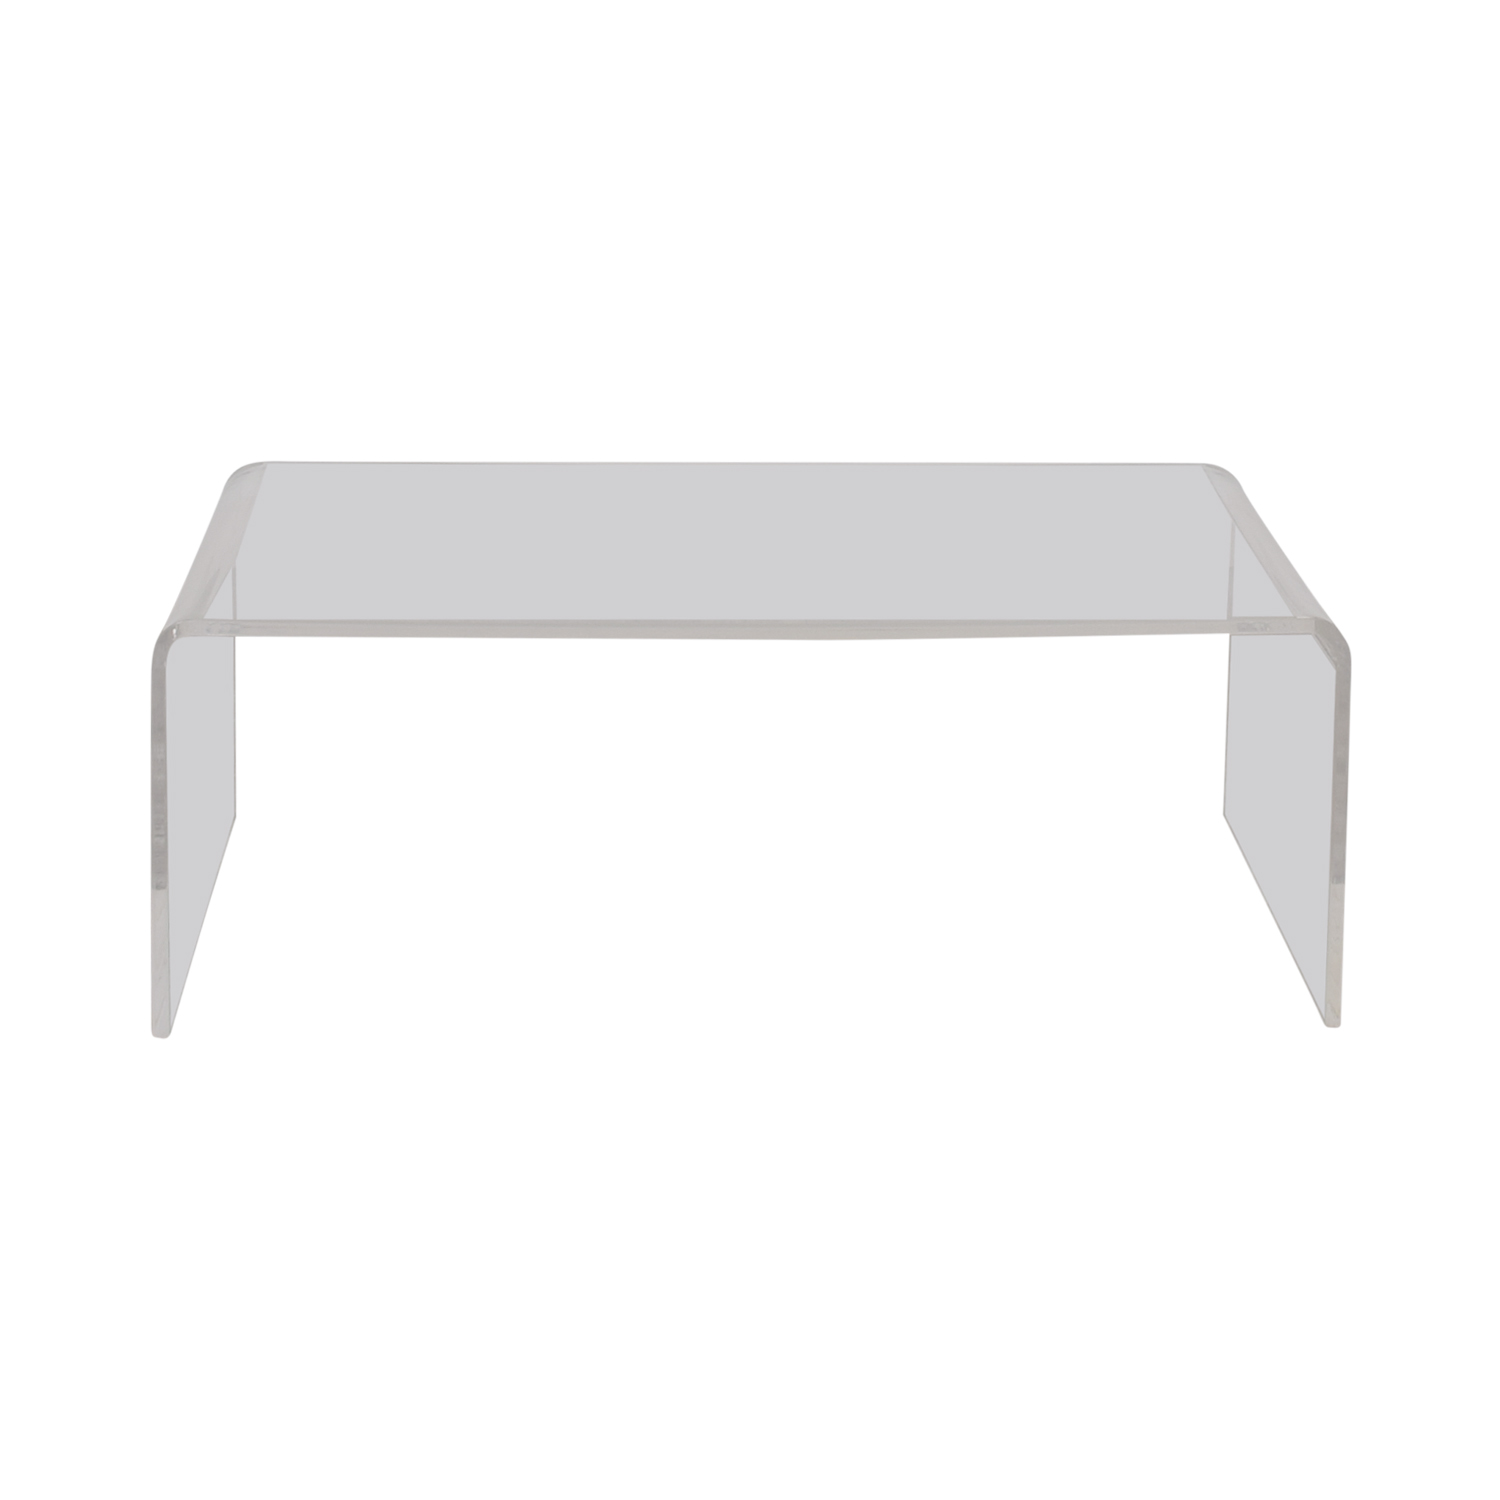 CB2 CB2 Peekaboo Acrylic Coffee Table used